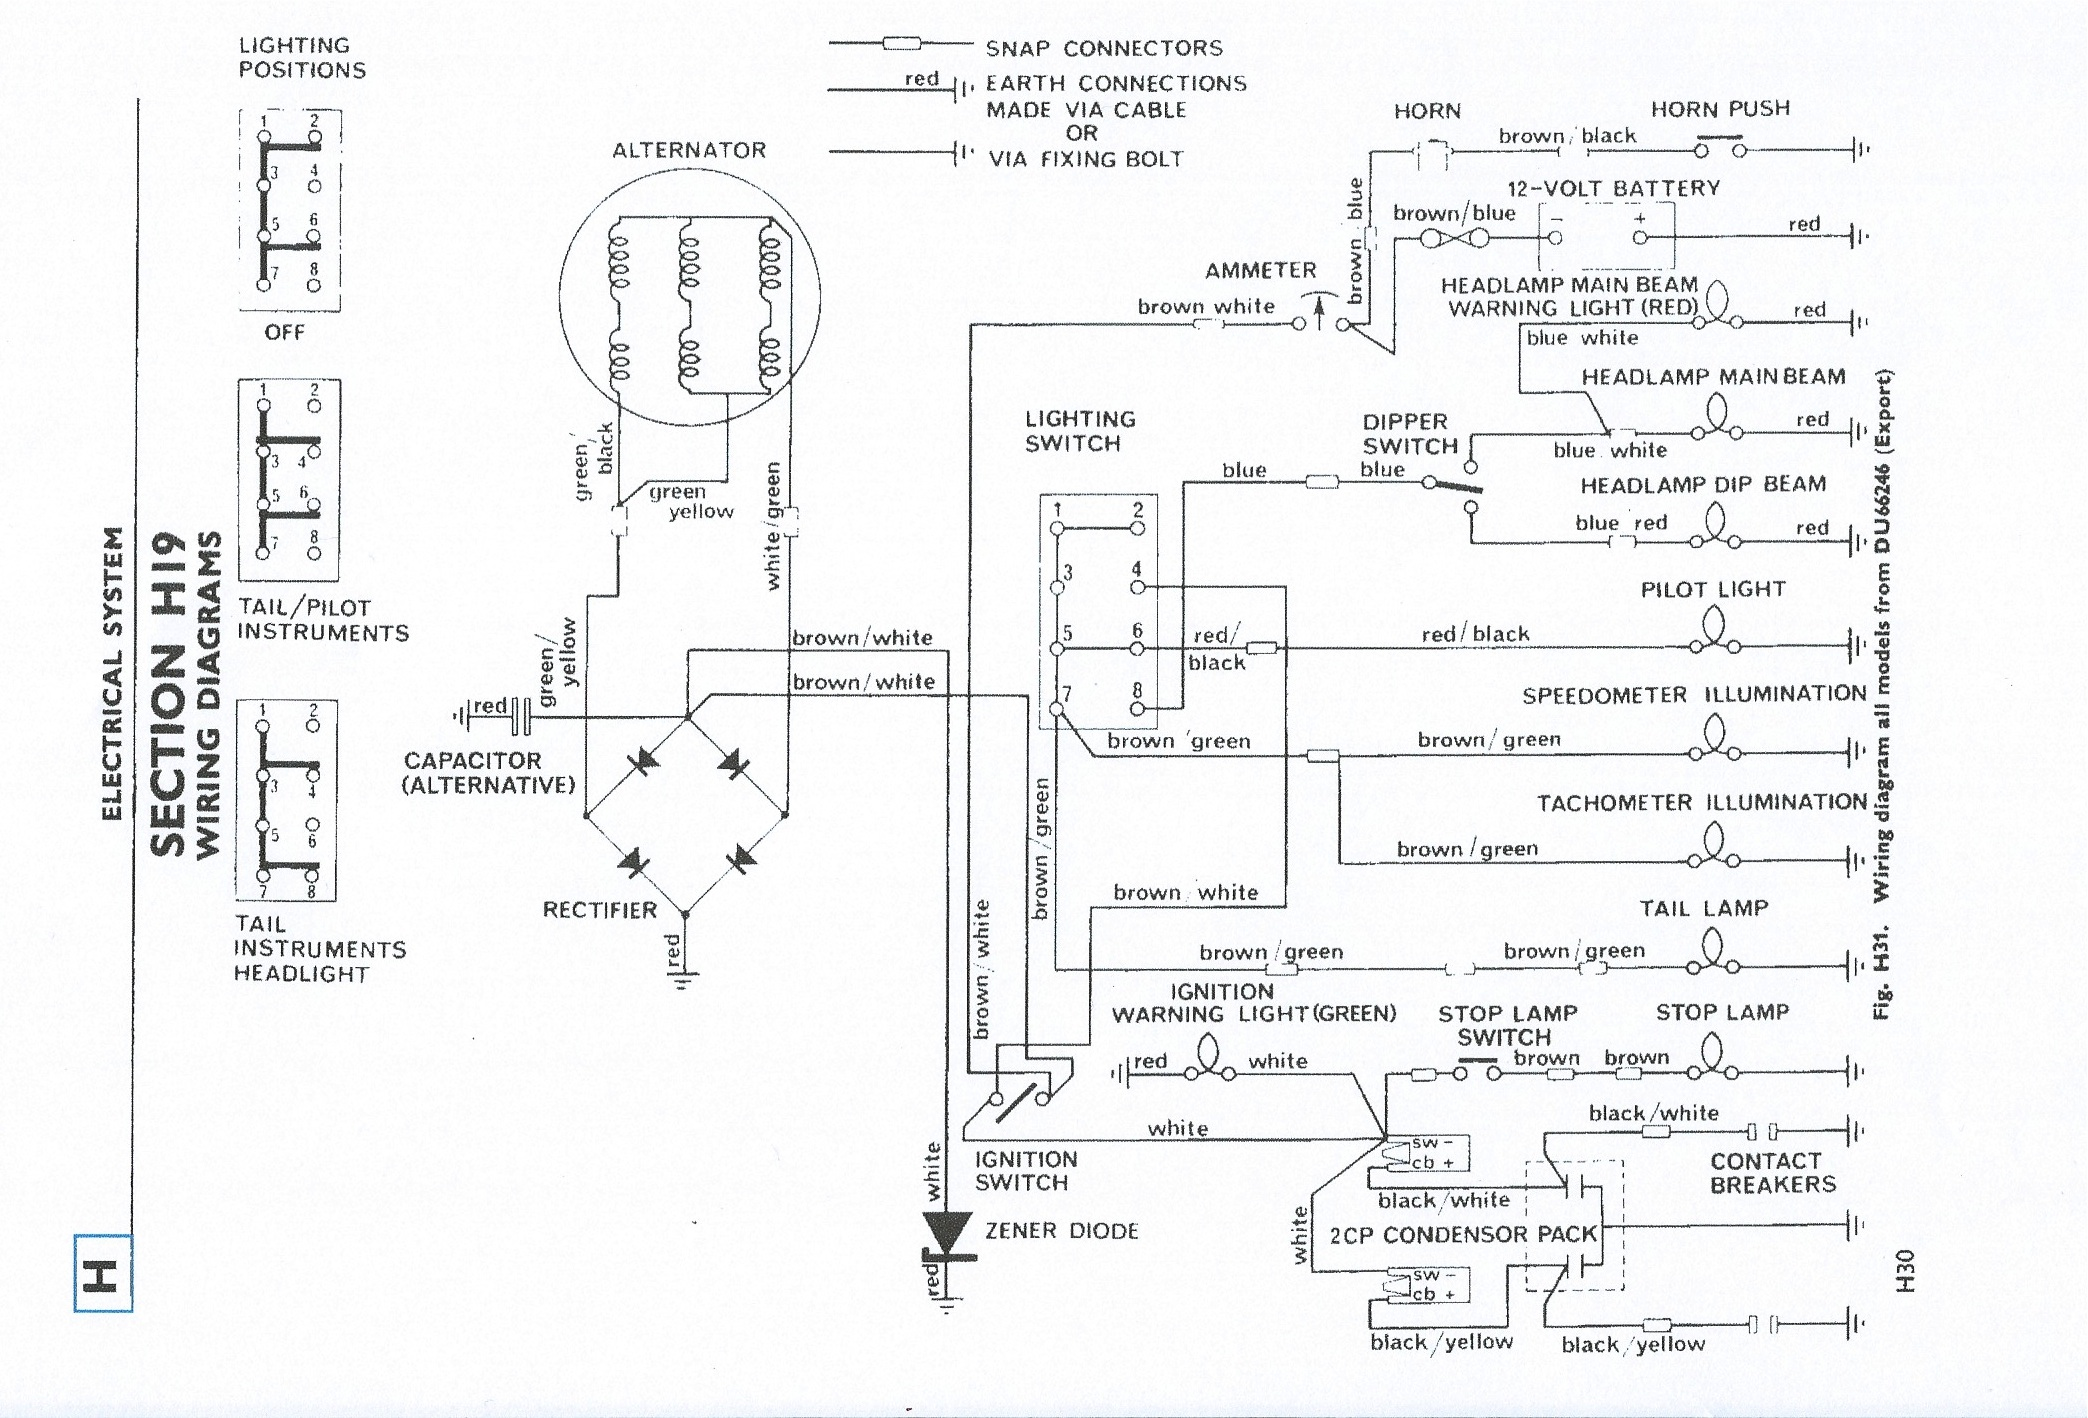 T5c Honda Gx620 Wiring Diagram | Schematic Diagram on engine control schematics, ford diagrams schematics, engine cooling, water pump schematics, engine power, computer schematics, engine bearings schematics, engine blue prints, ignition coil schematics, engine drawings, engine wiring harness,